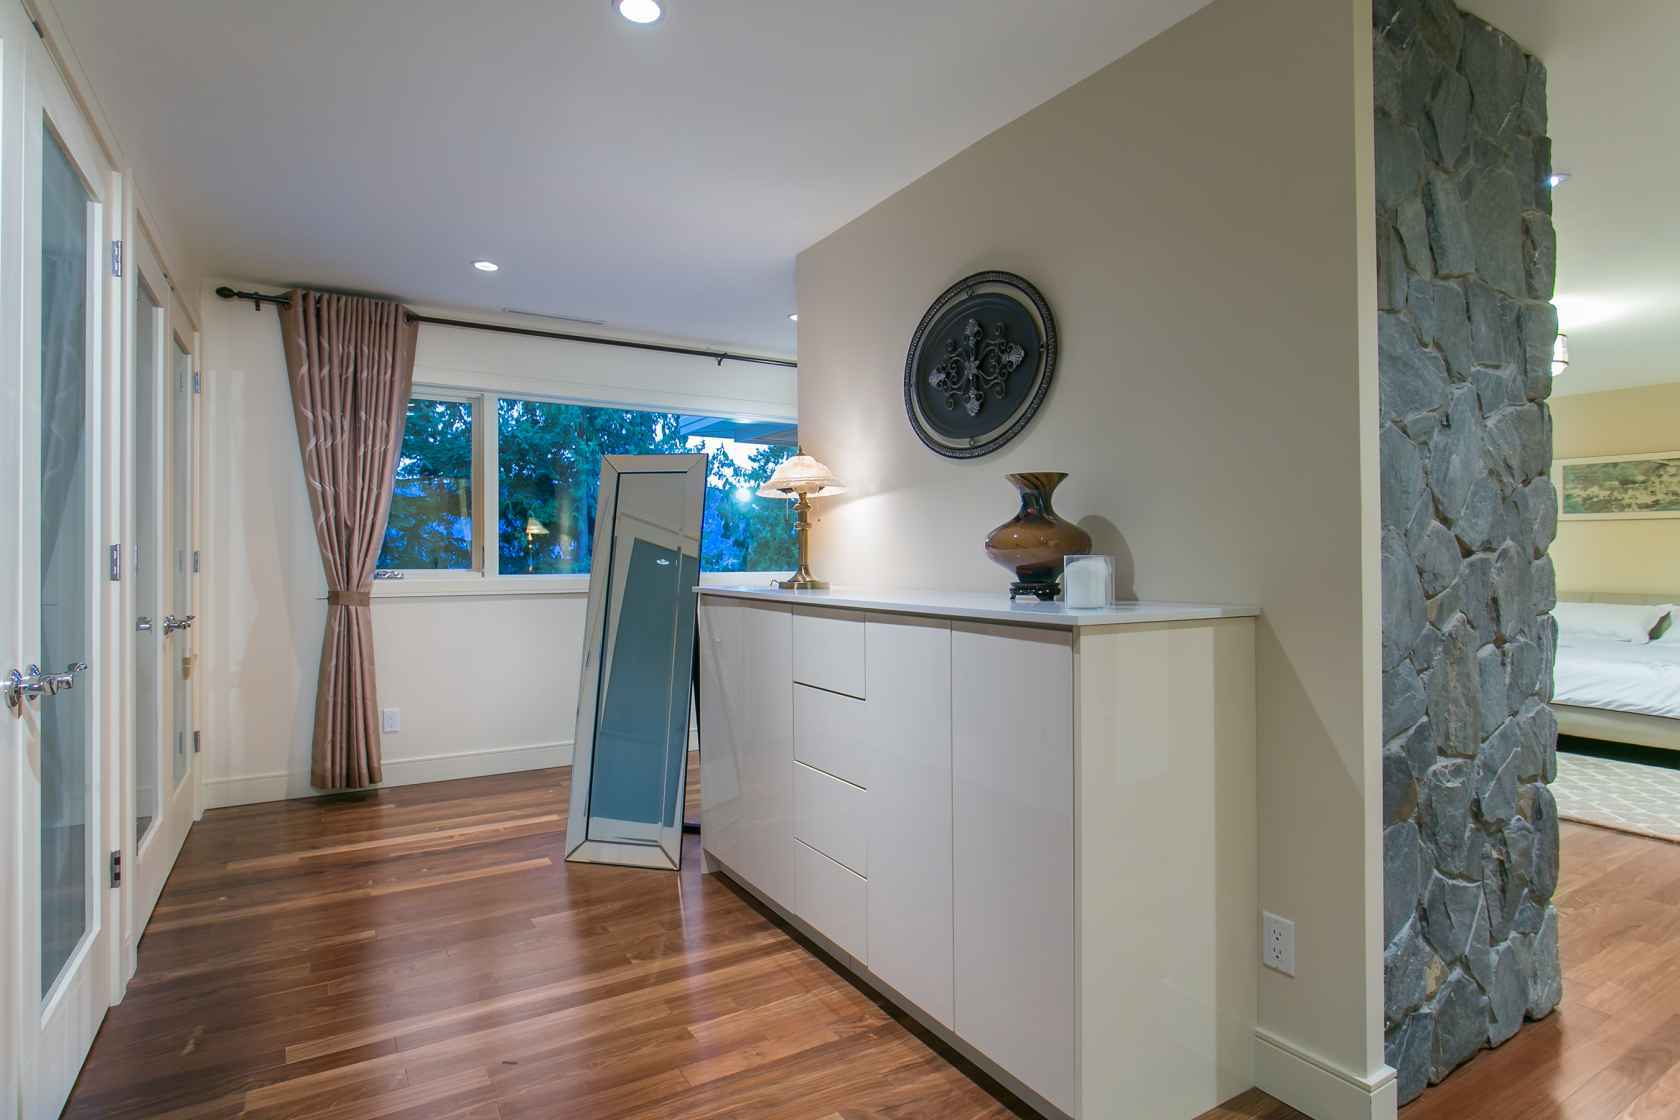 1J6A7439 at 6218 St. Georges Crescent, Gleneagles, West Vancouver